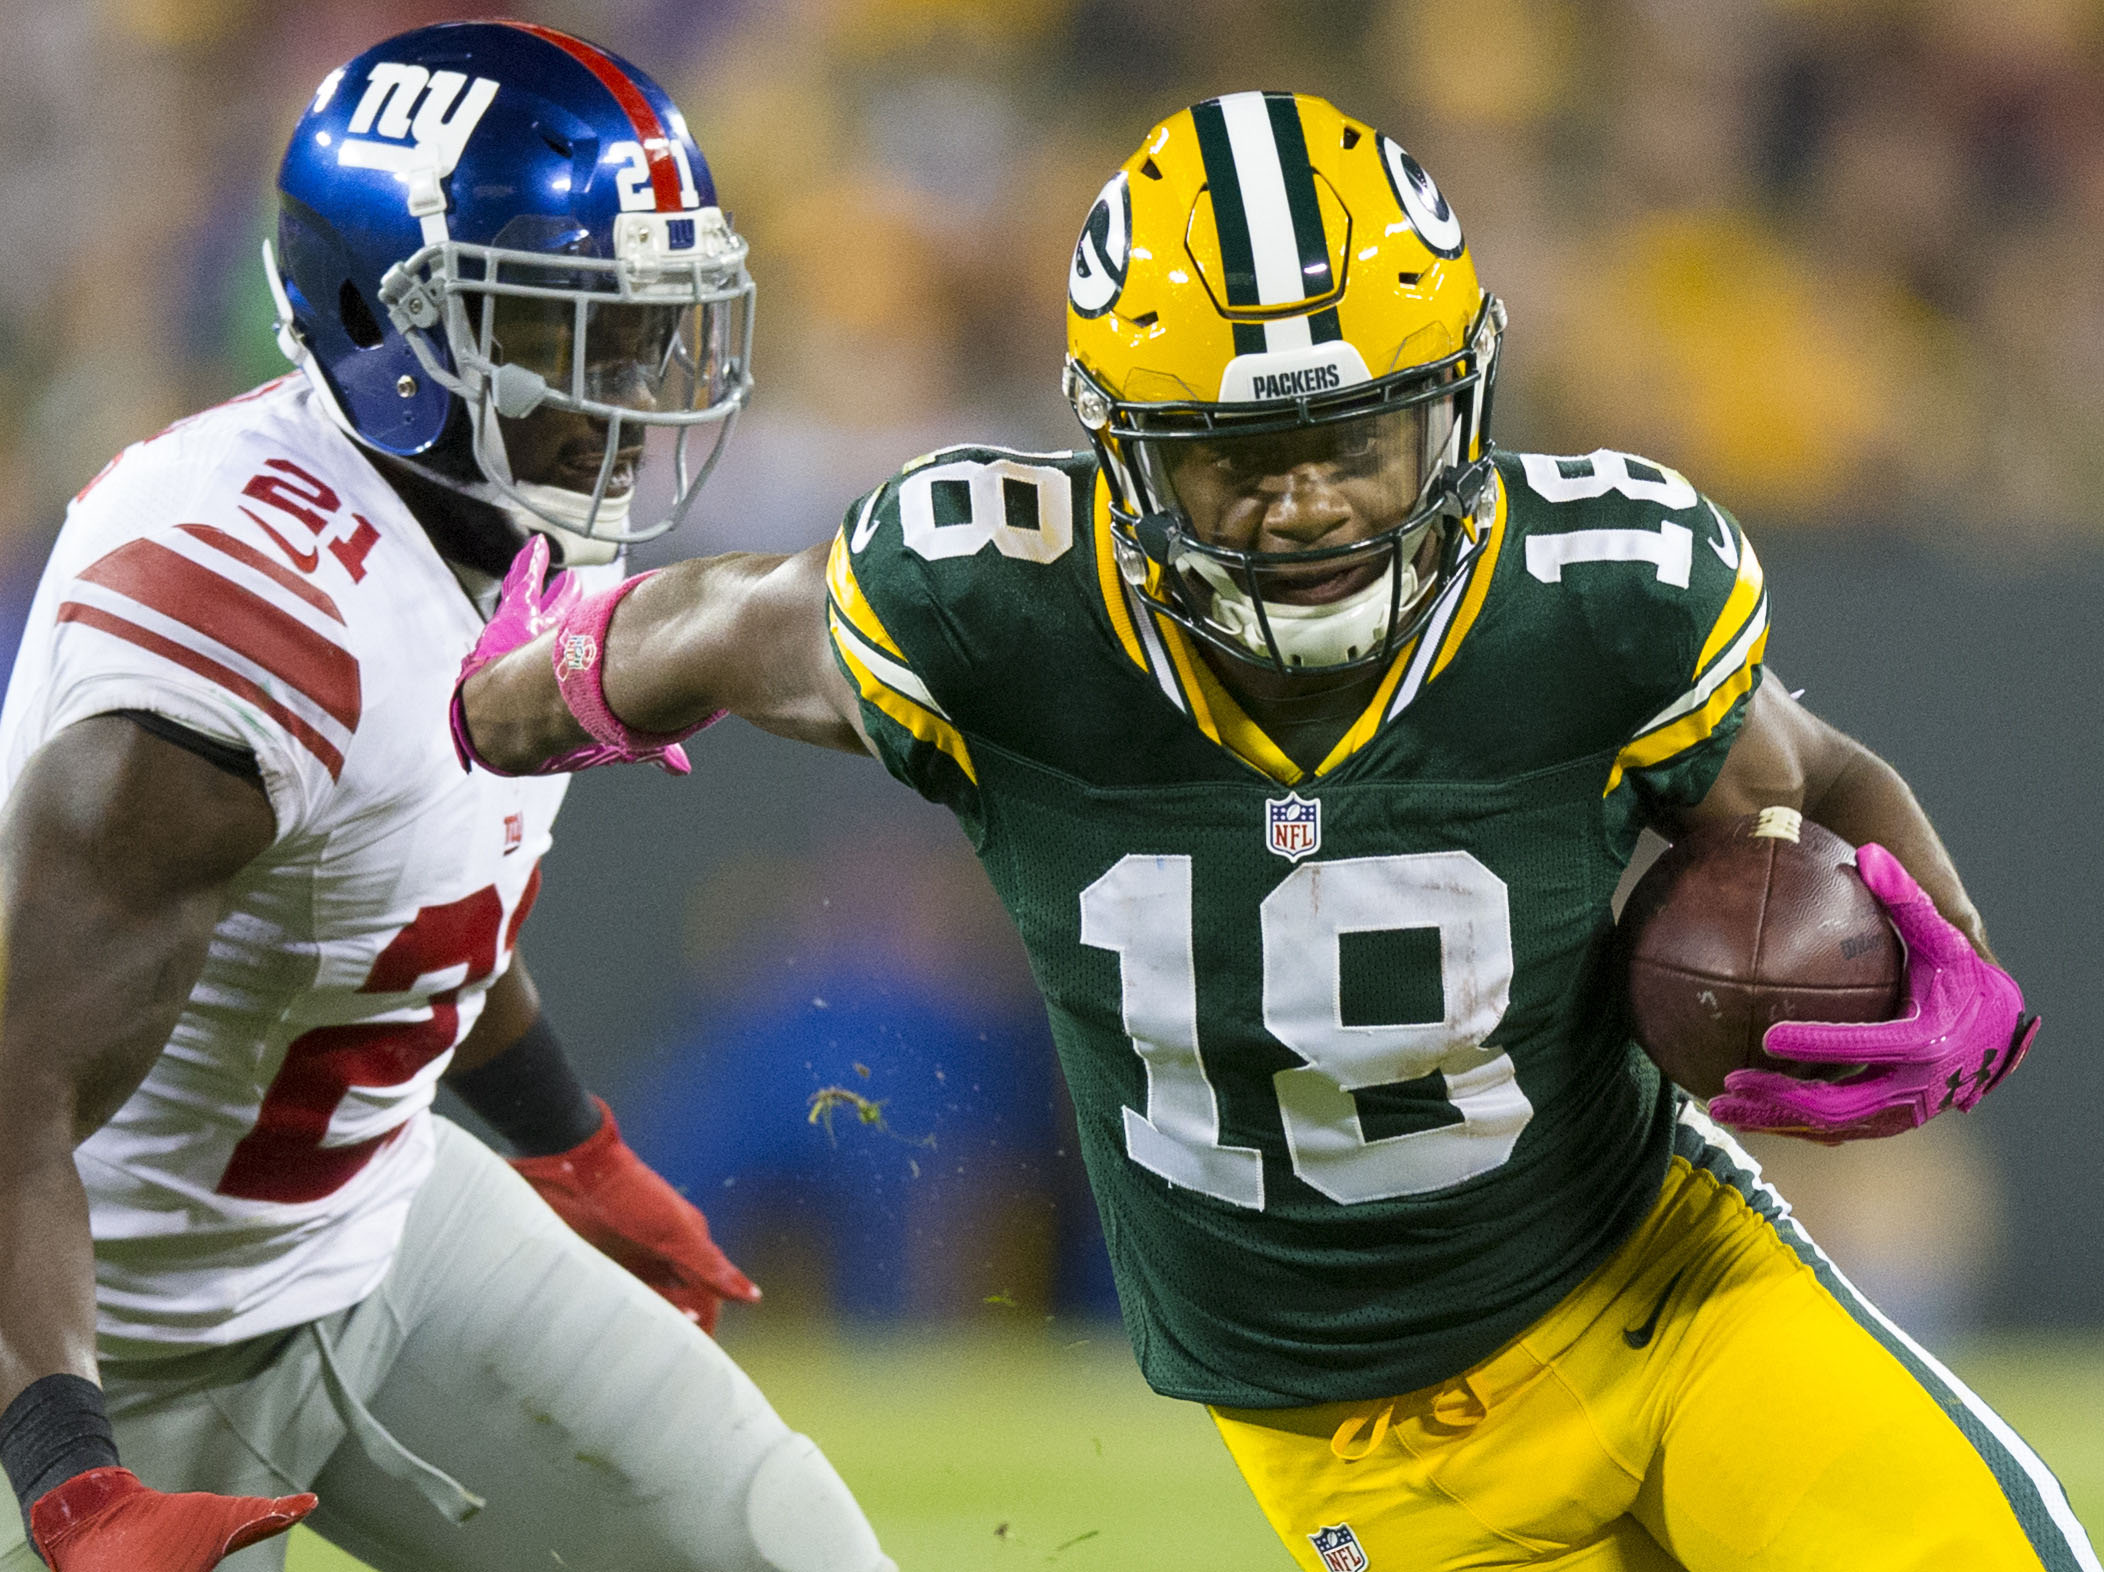 Oct 9 2016 Green Bay WI USA Green Bay Packers wide receiver Randall Cobb rushes with the football around New York Giants#039 Landon Collins during the third quarter at Lambeau Field. Green Bay won 23-16. Mandatory Credit Jeff Hanisch